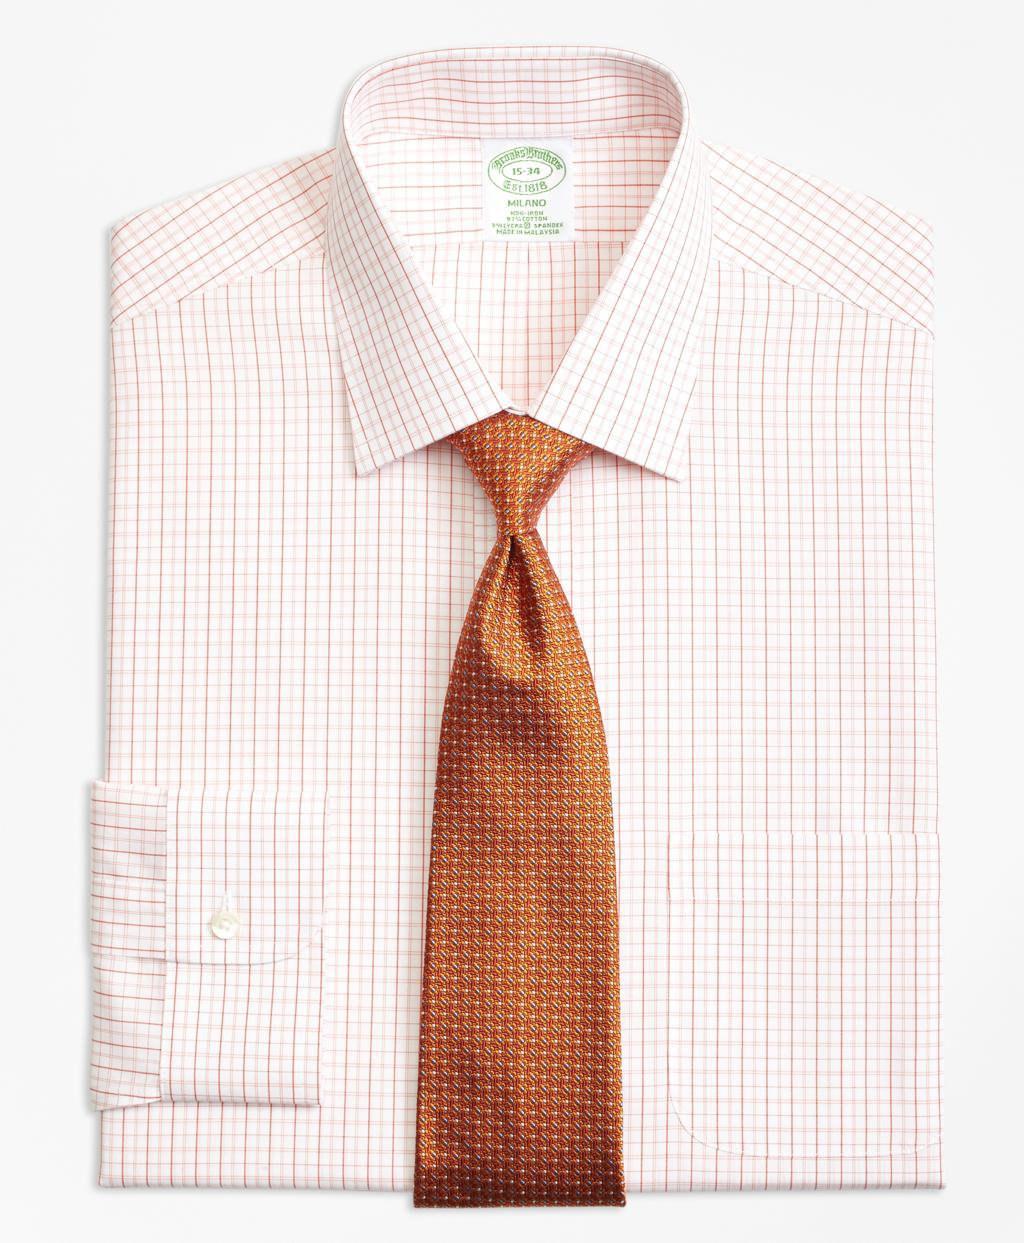 Lyst brooks brothers non iron regent fit double split for Brooks brothers dress shirt fit